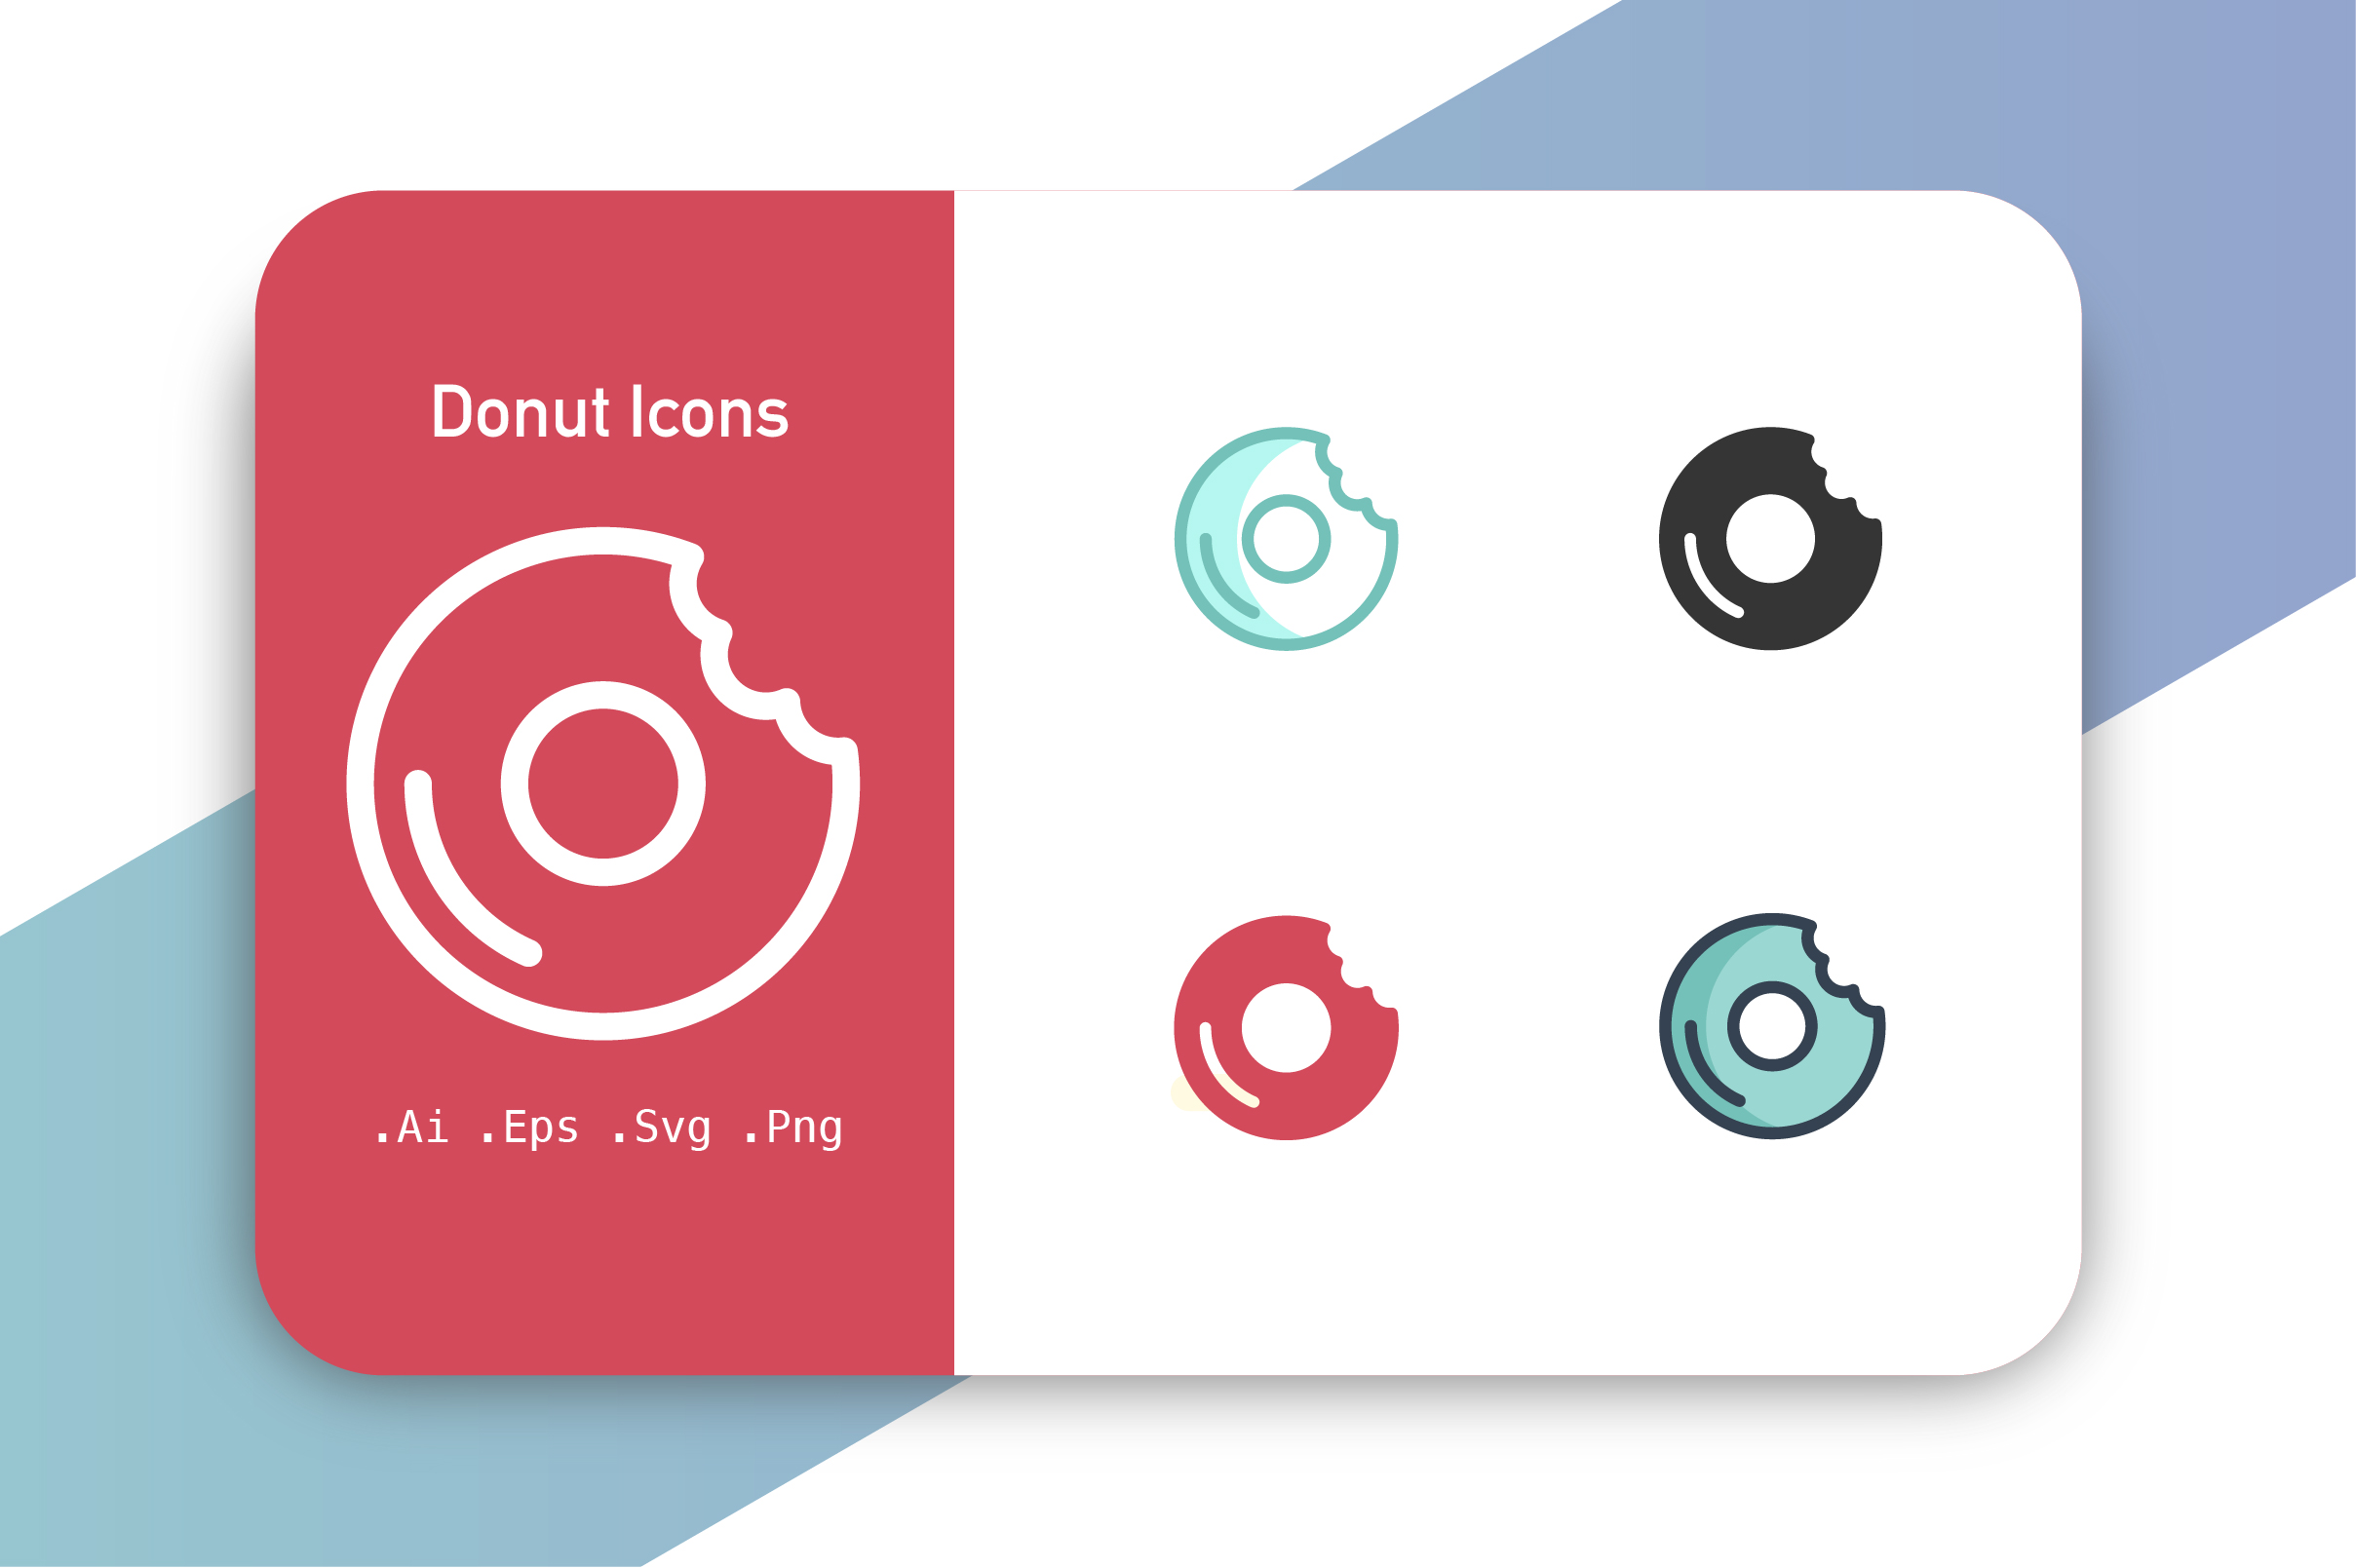 Download Free Donuts Icon Graphic By Hellopixelzstudio Creative Fabrica for Cricut Explore, Silhouette and other cutting machines.